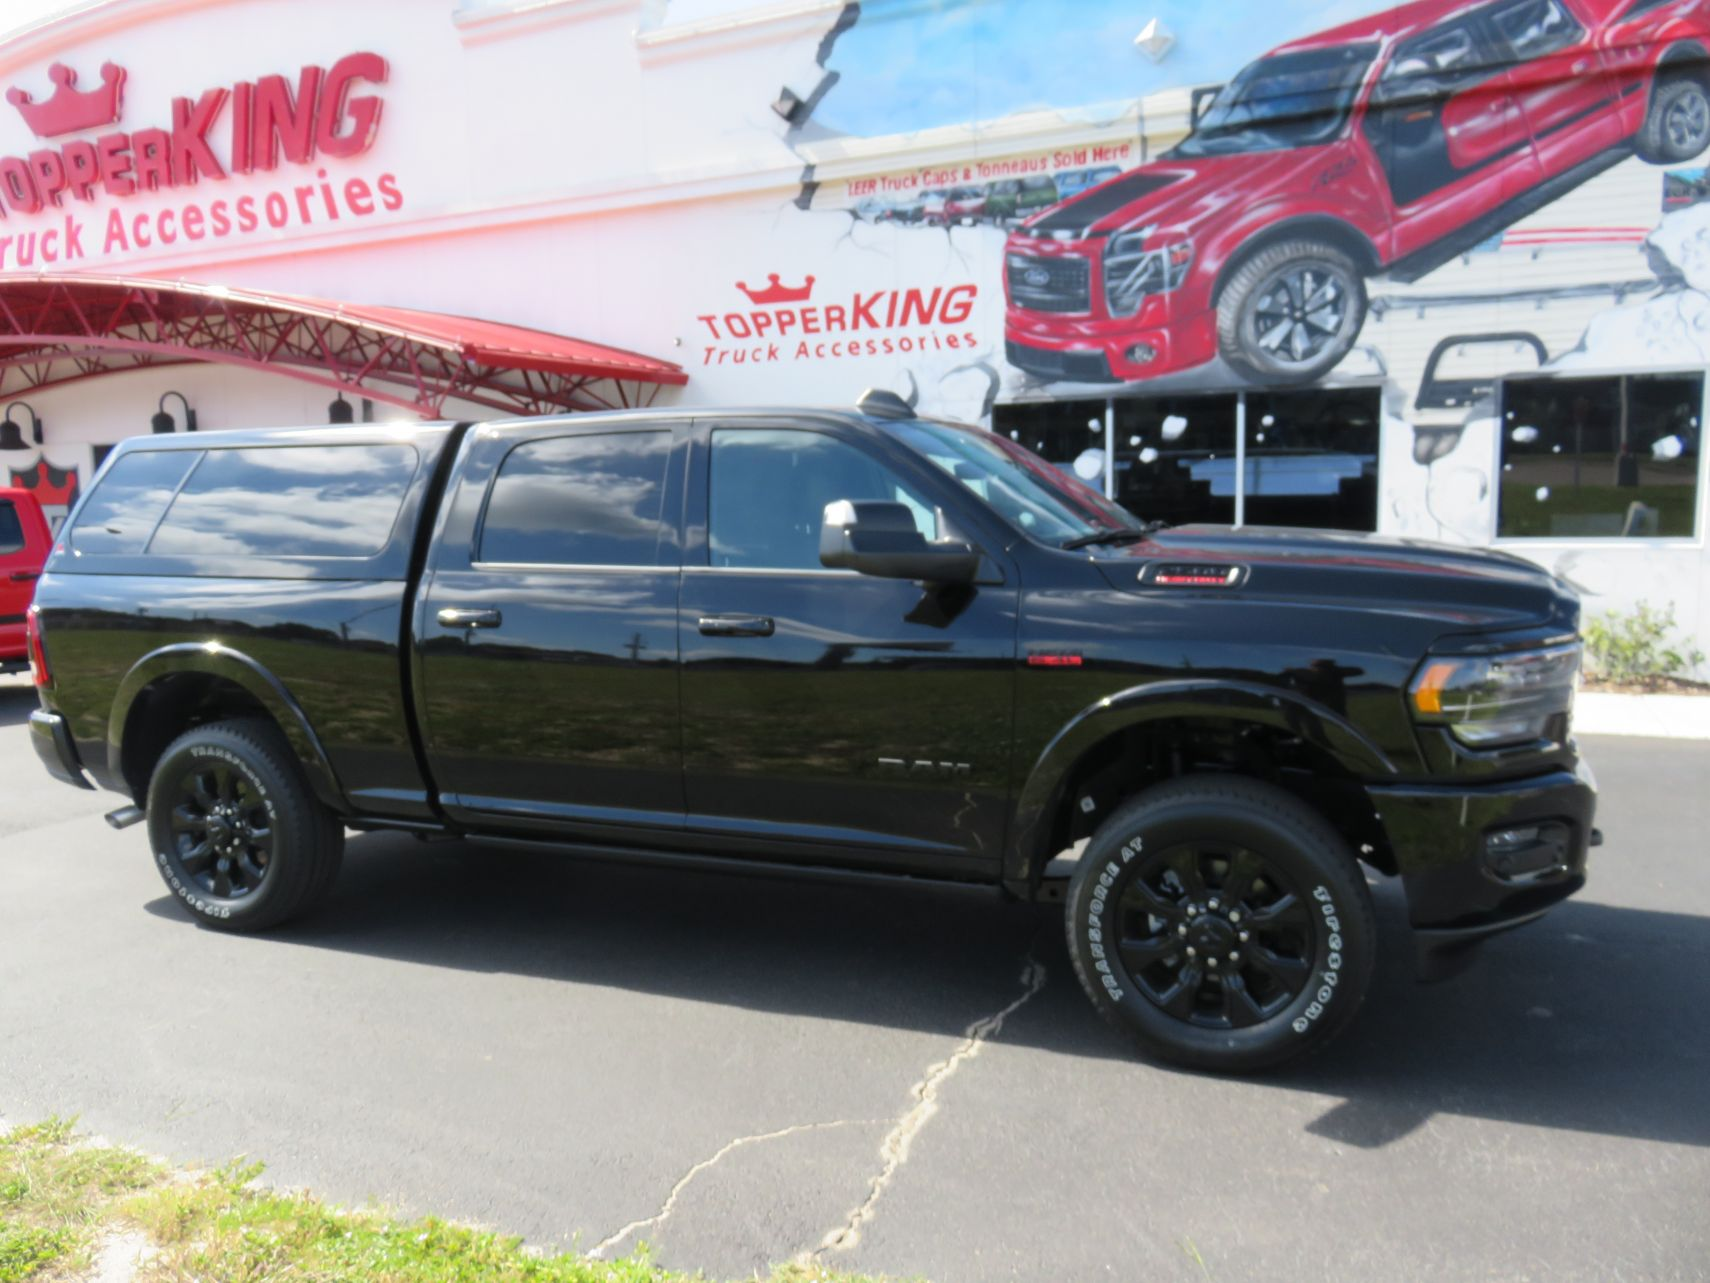 2020 Ram Leer 100xl With Hitch And Tint Topperking Topperking Providing All Of Tampa Bay With Quality Truck Accessories